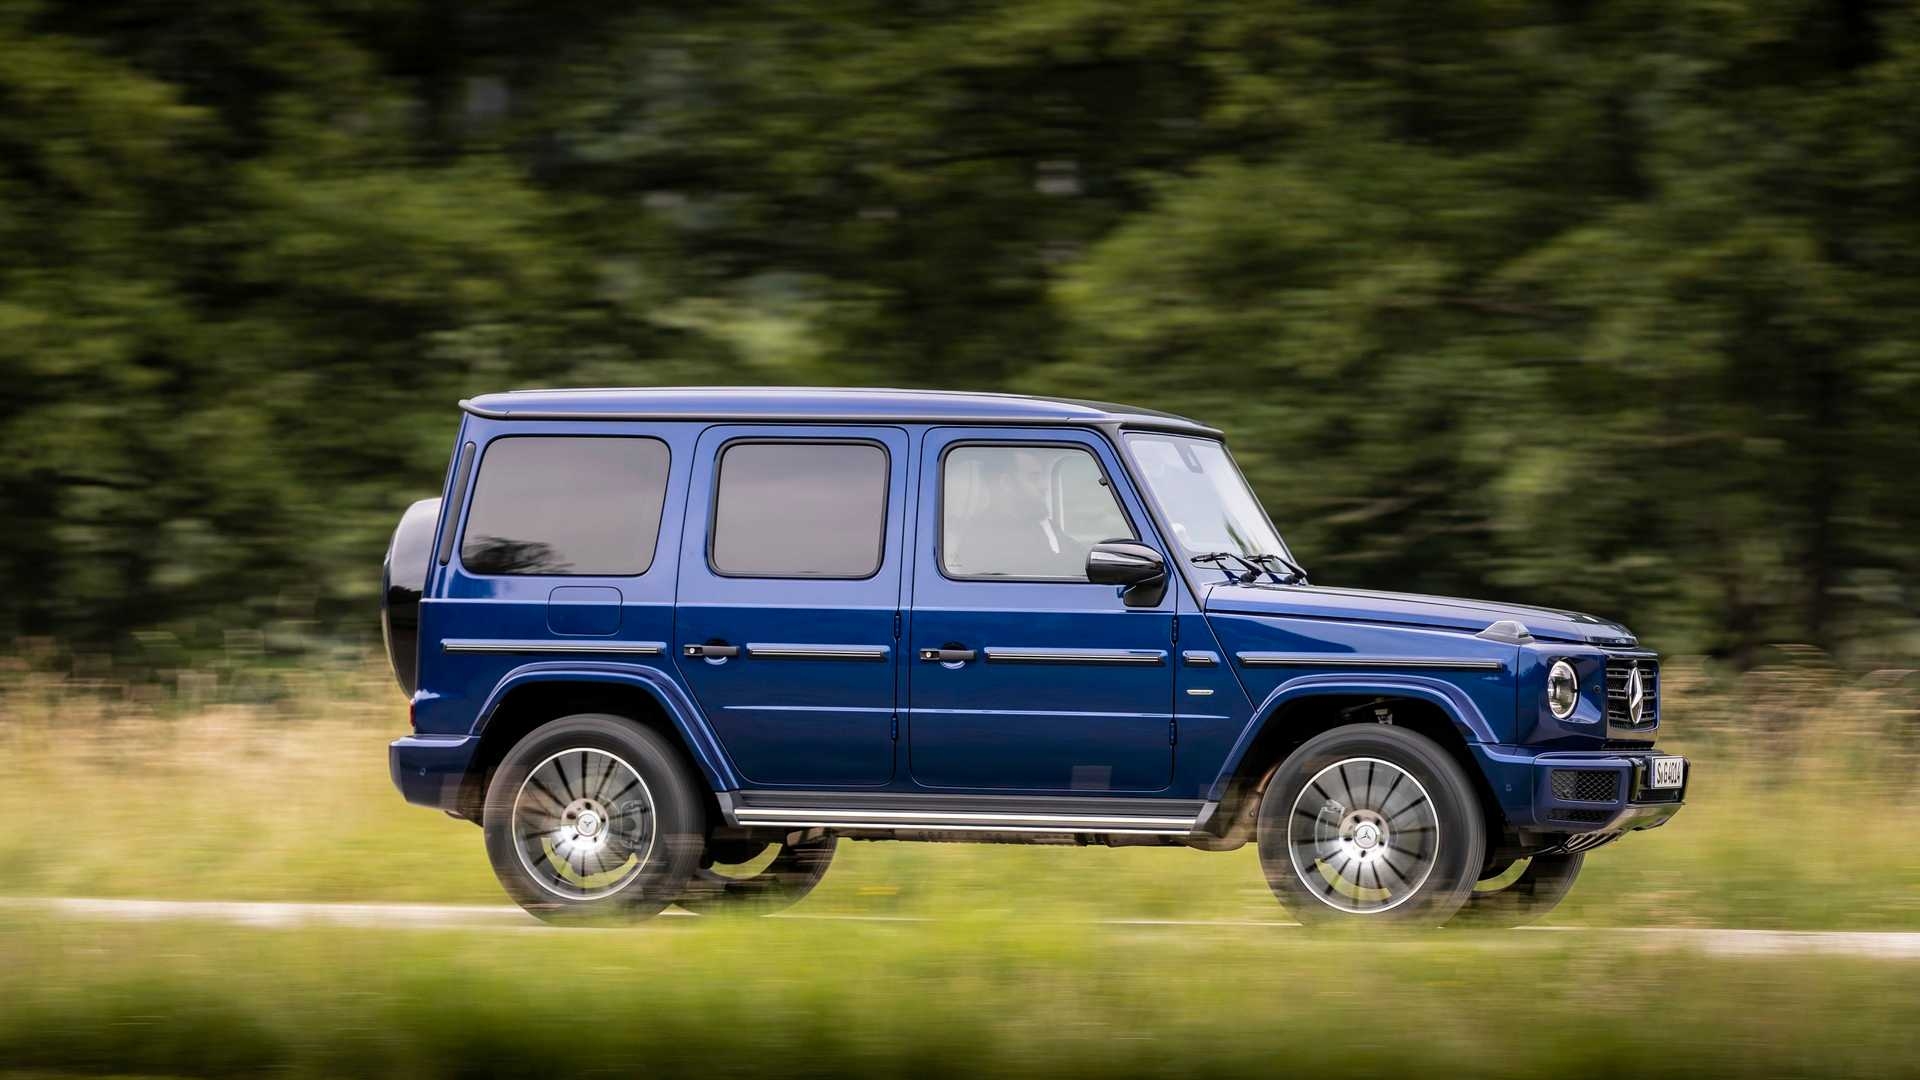 Mercedes Amg G63 Celebrates 20th Anniversary With Cool Packages